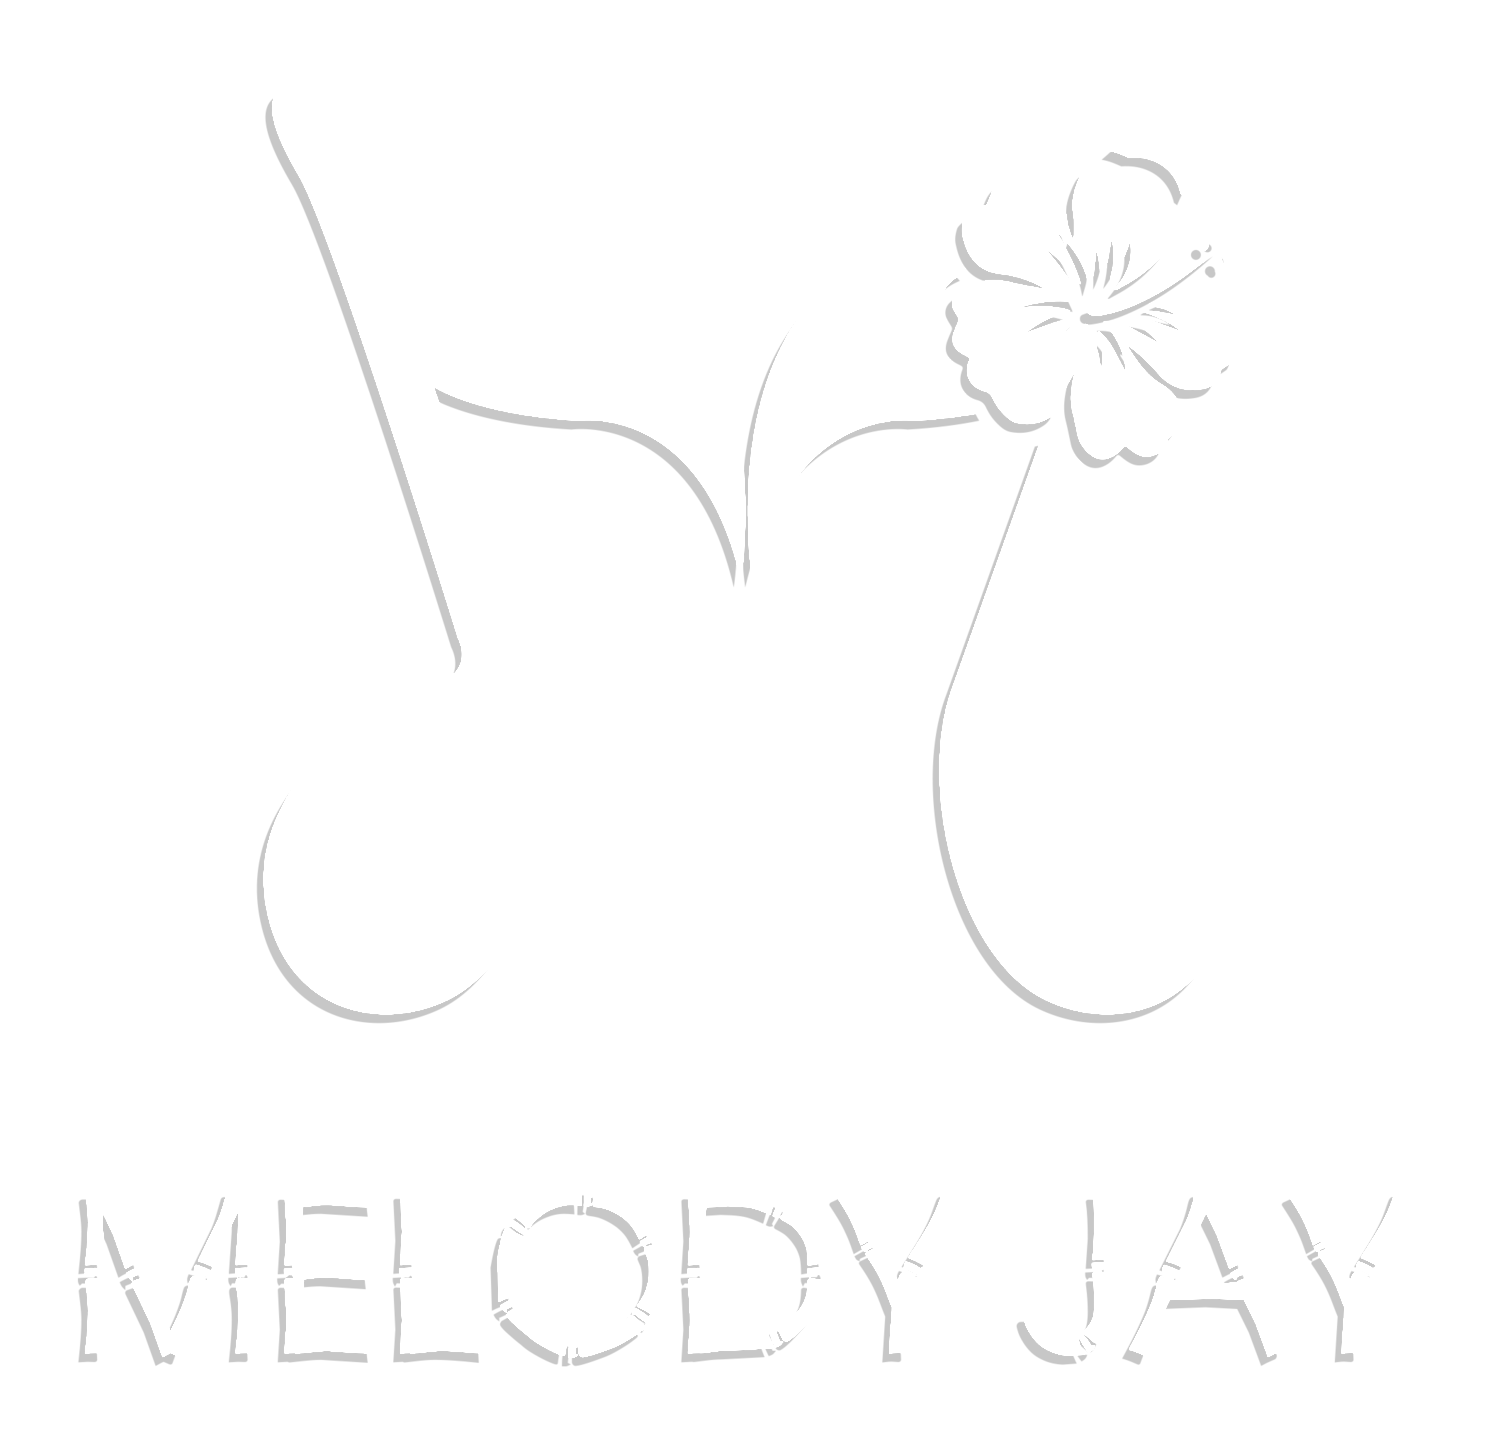 The Official Website of Melody Jay